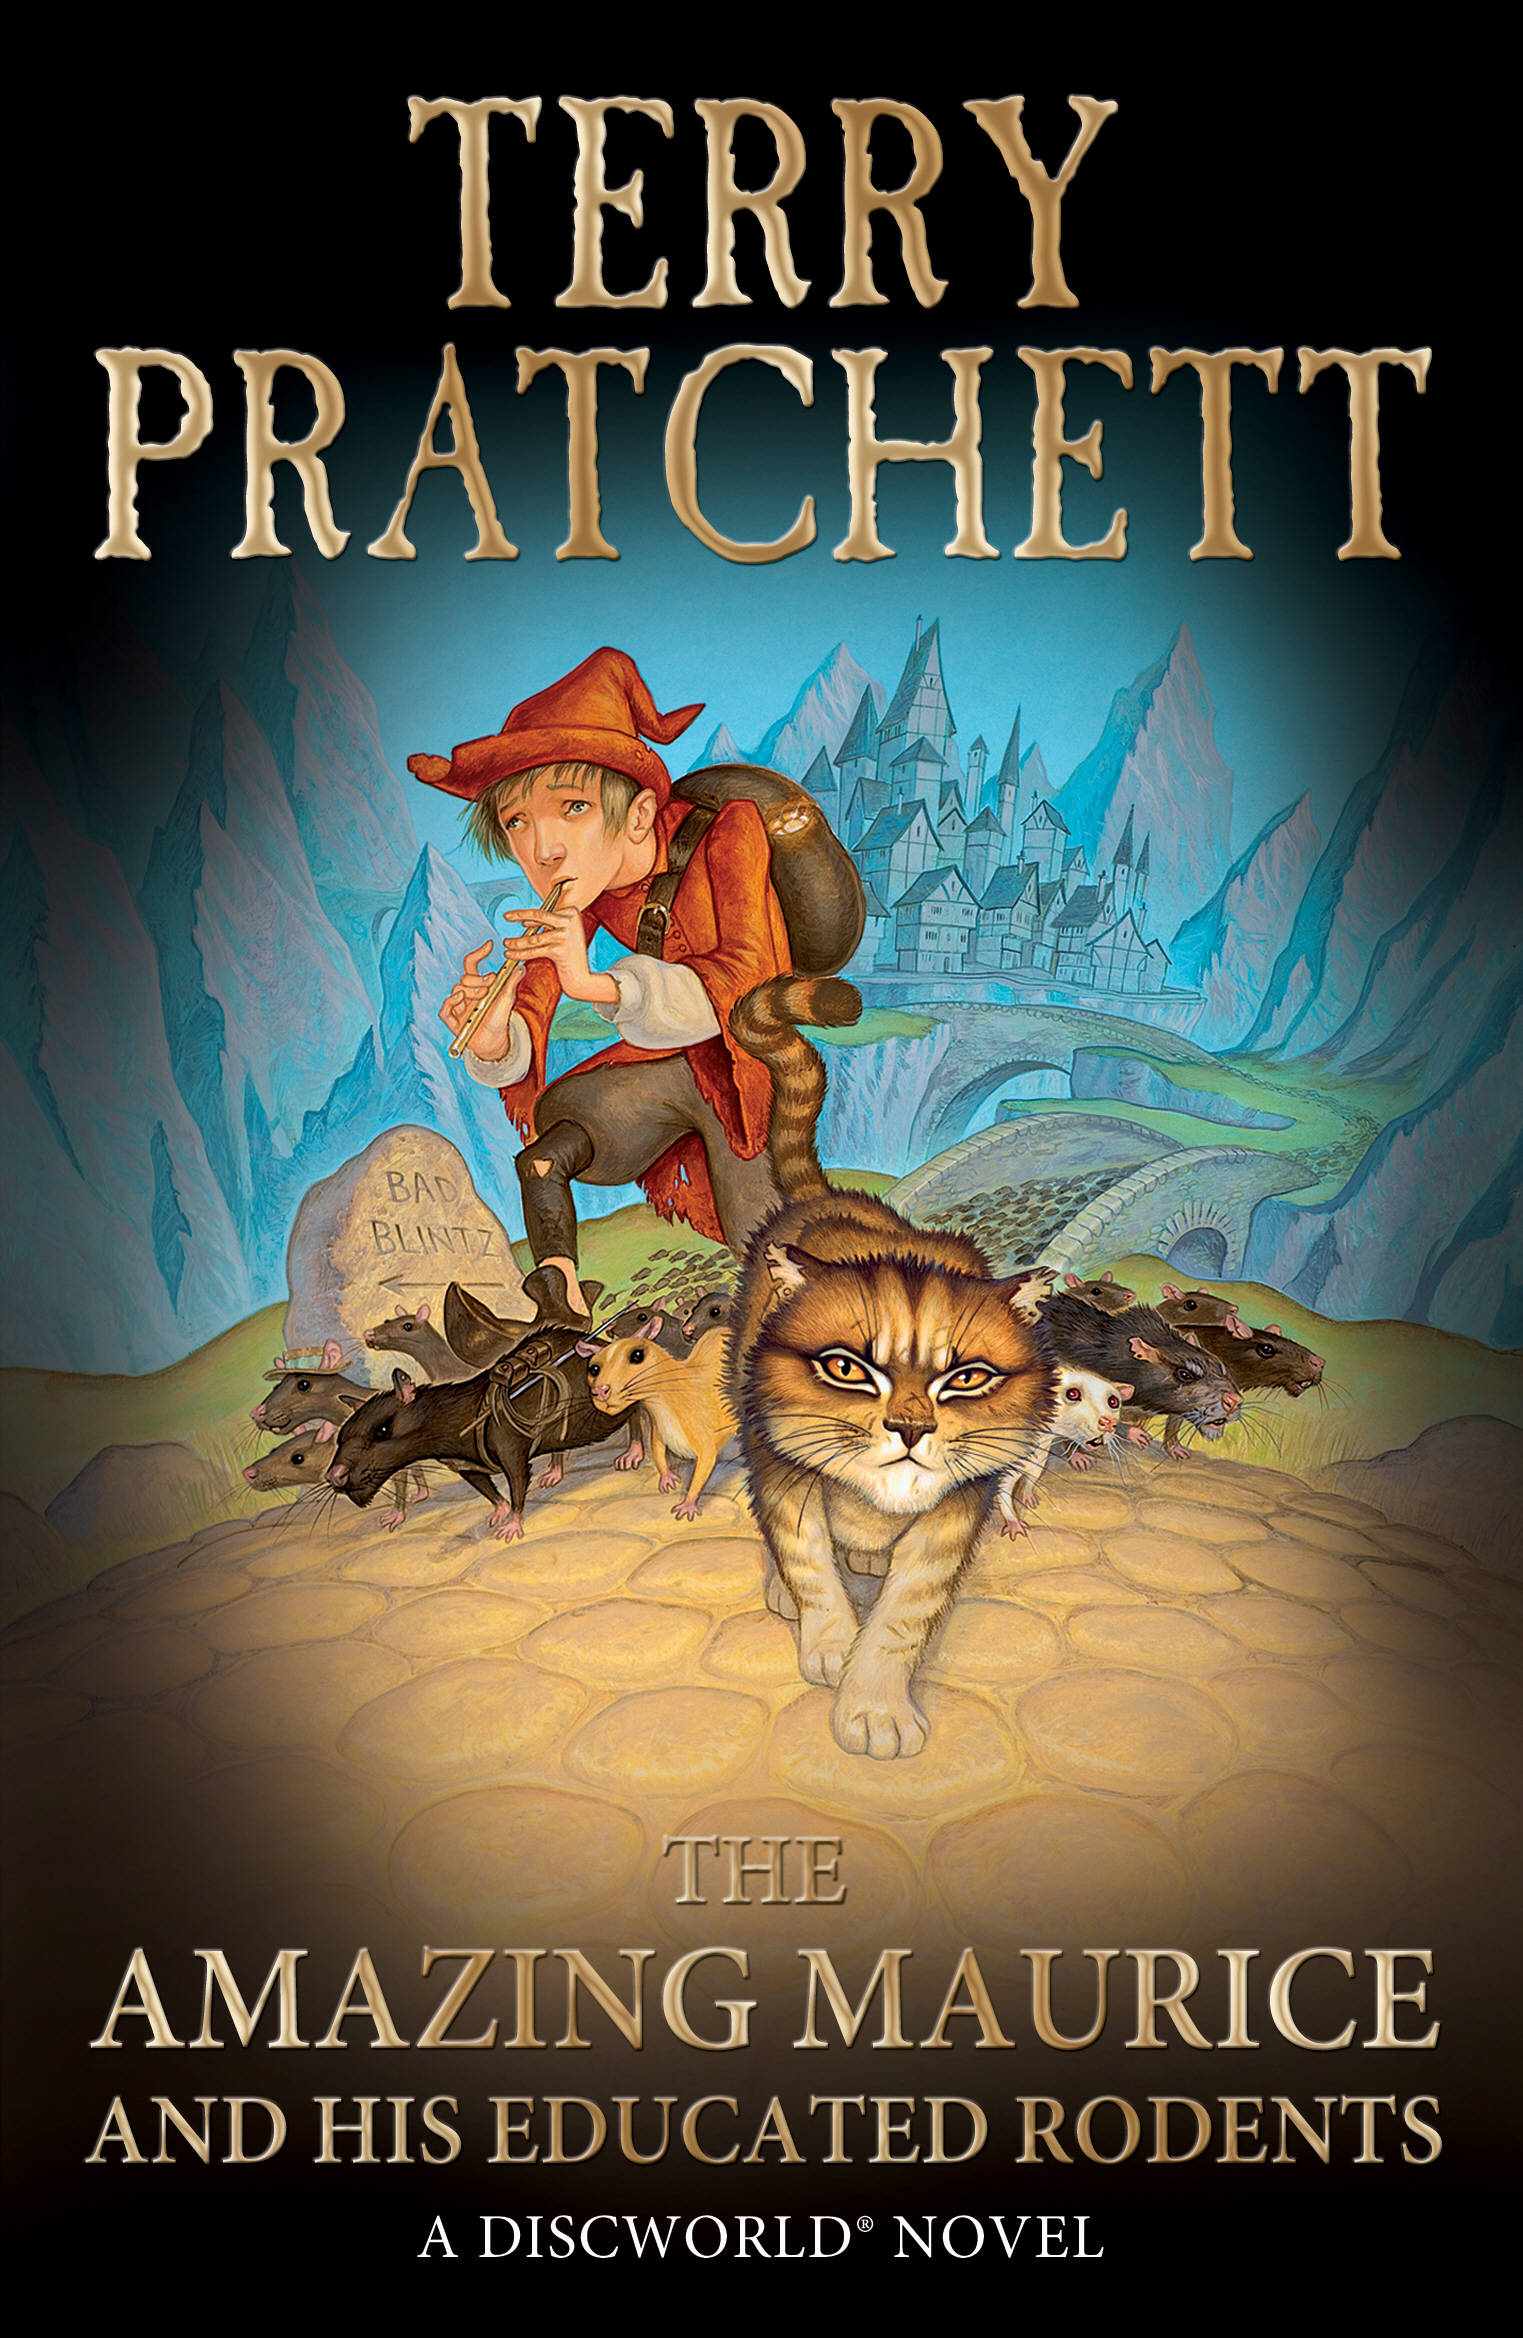 The Amazing Maurice and his Educated Rodents (Discworld Novel 28)